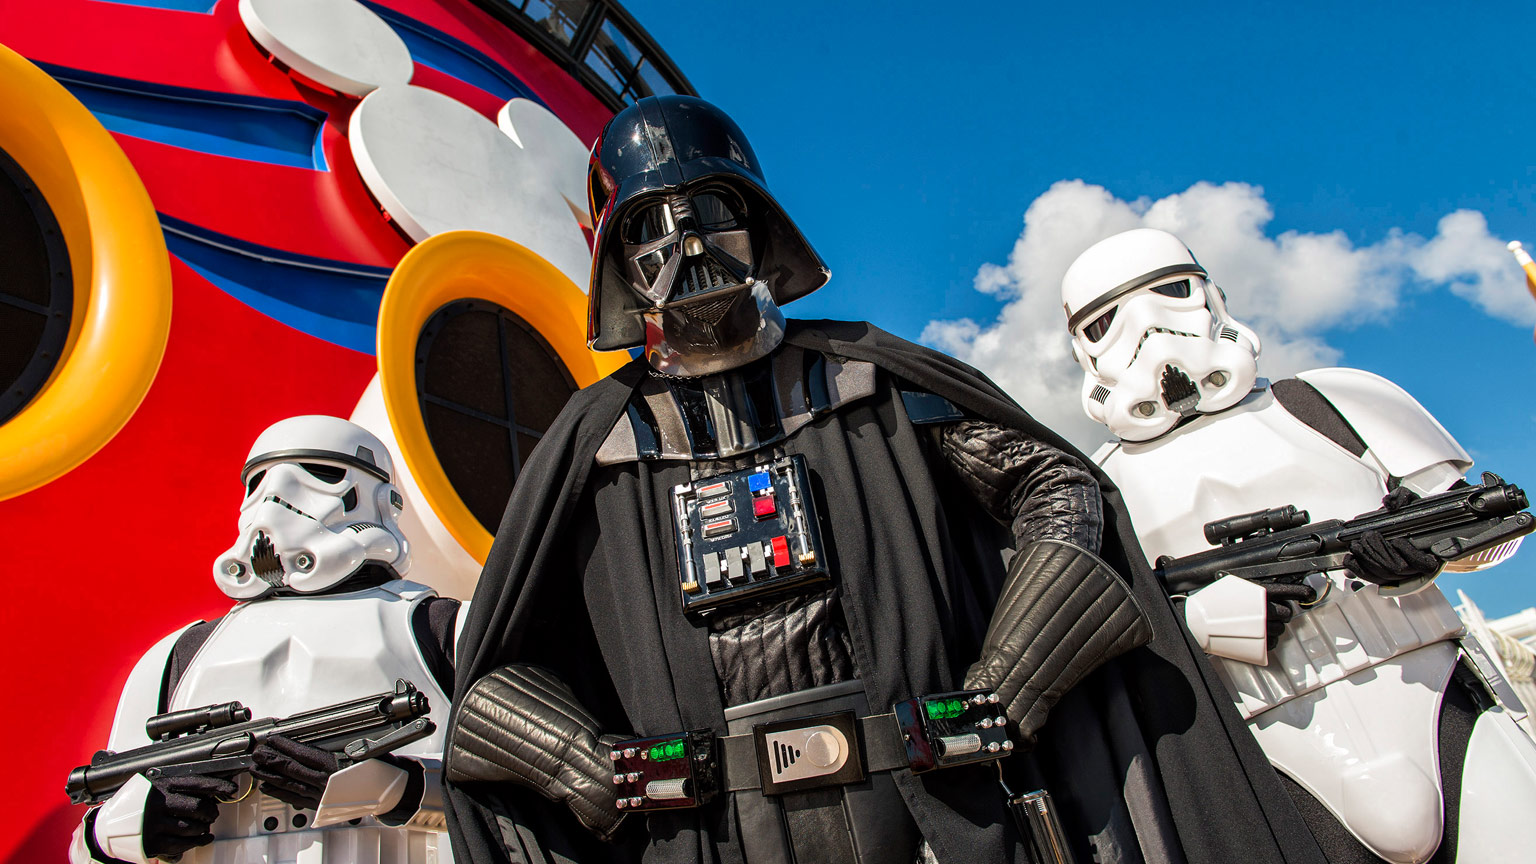 Darth Vader and stormtroopers aboard the Disney Fantasy.